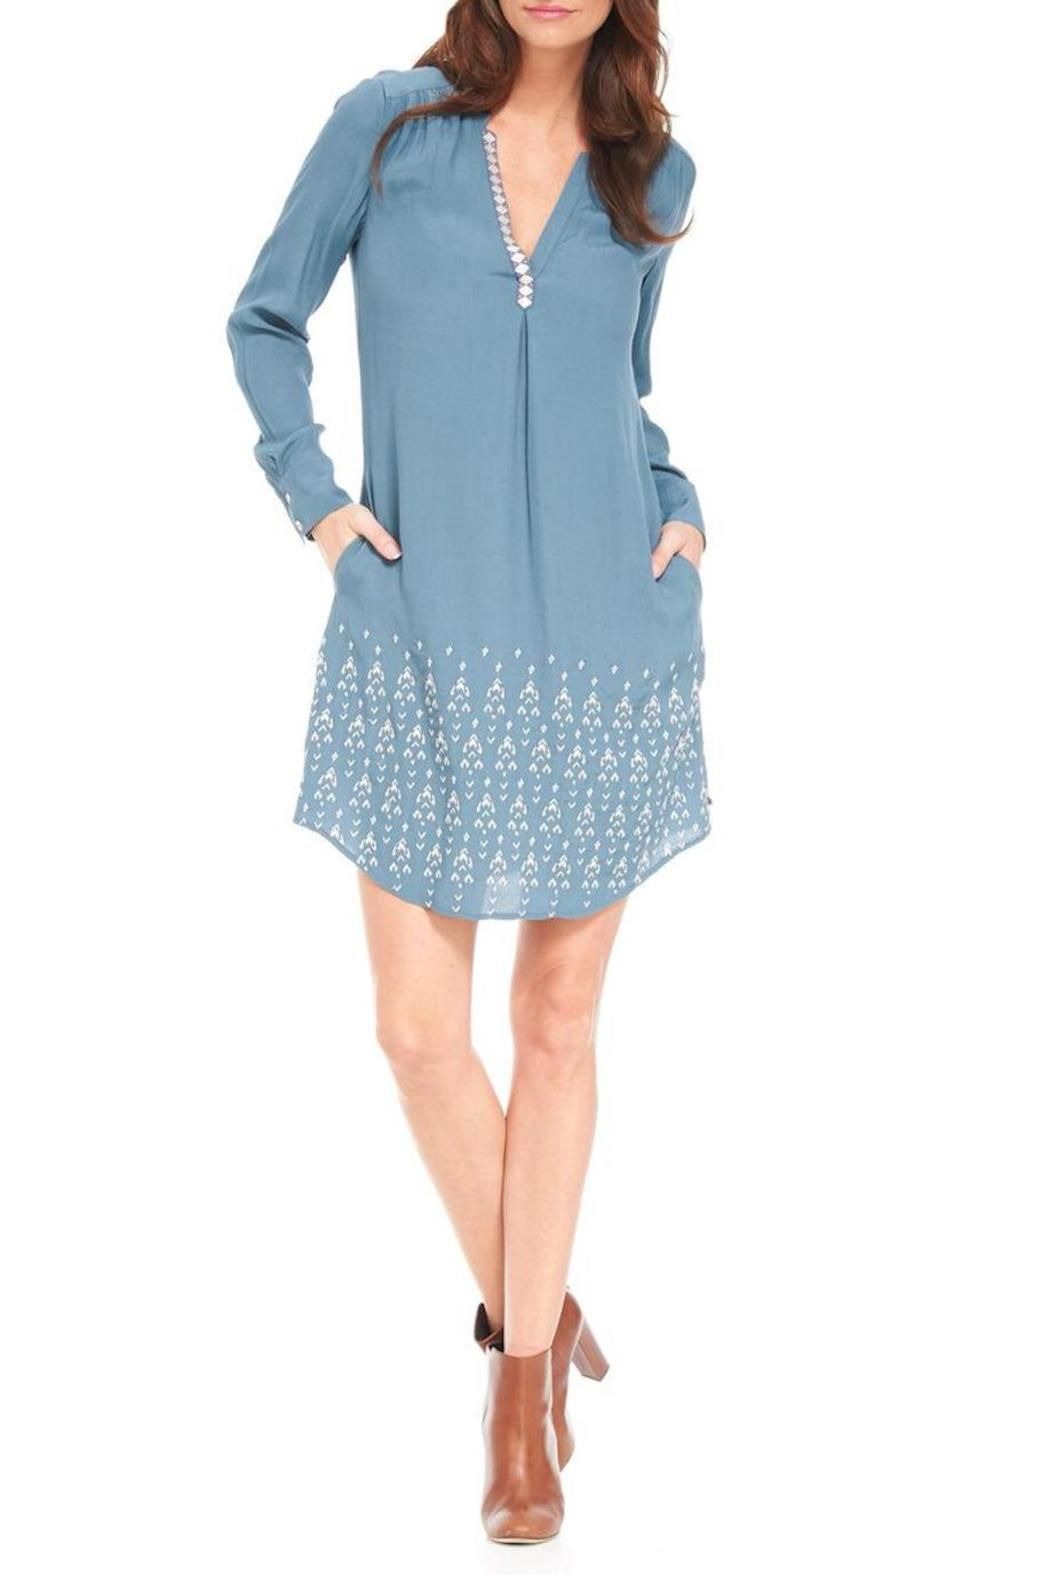 """Get the perfectly flowing relaxed-fit shirt dress, complete with practical pockets. This show-stopping dress also comes with eye-catching details such as embroidered arrows and an open mandarin collar. Belt this dress at the waist for a more tailored fit. Features: Teal with embroidered arrow pattern V-neck Relaxed flowy silhouette Fully lined Wear it loose or with a belt Practical pockets Curved shirt tail hem with side slits    Measurements: length: size small 37.5"""" (from high point…"""